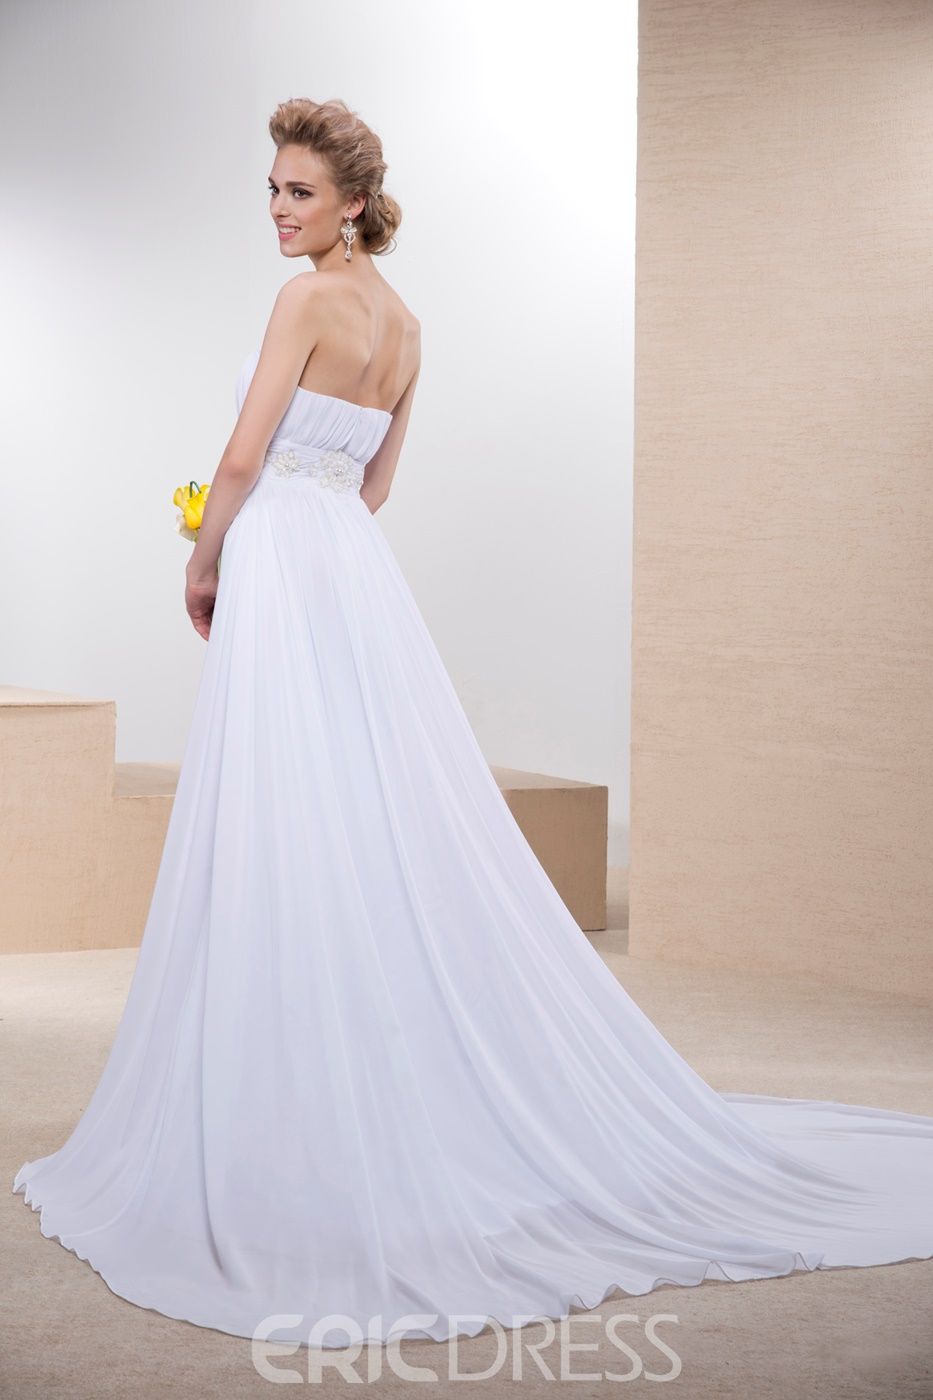 Simple A-line Strapless Wedding Dress